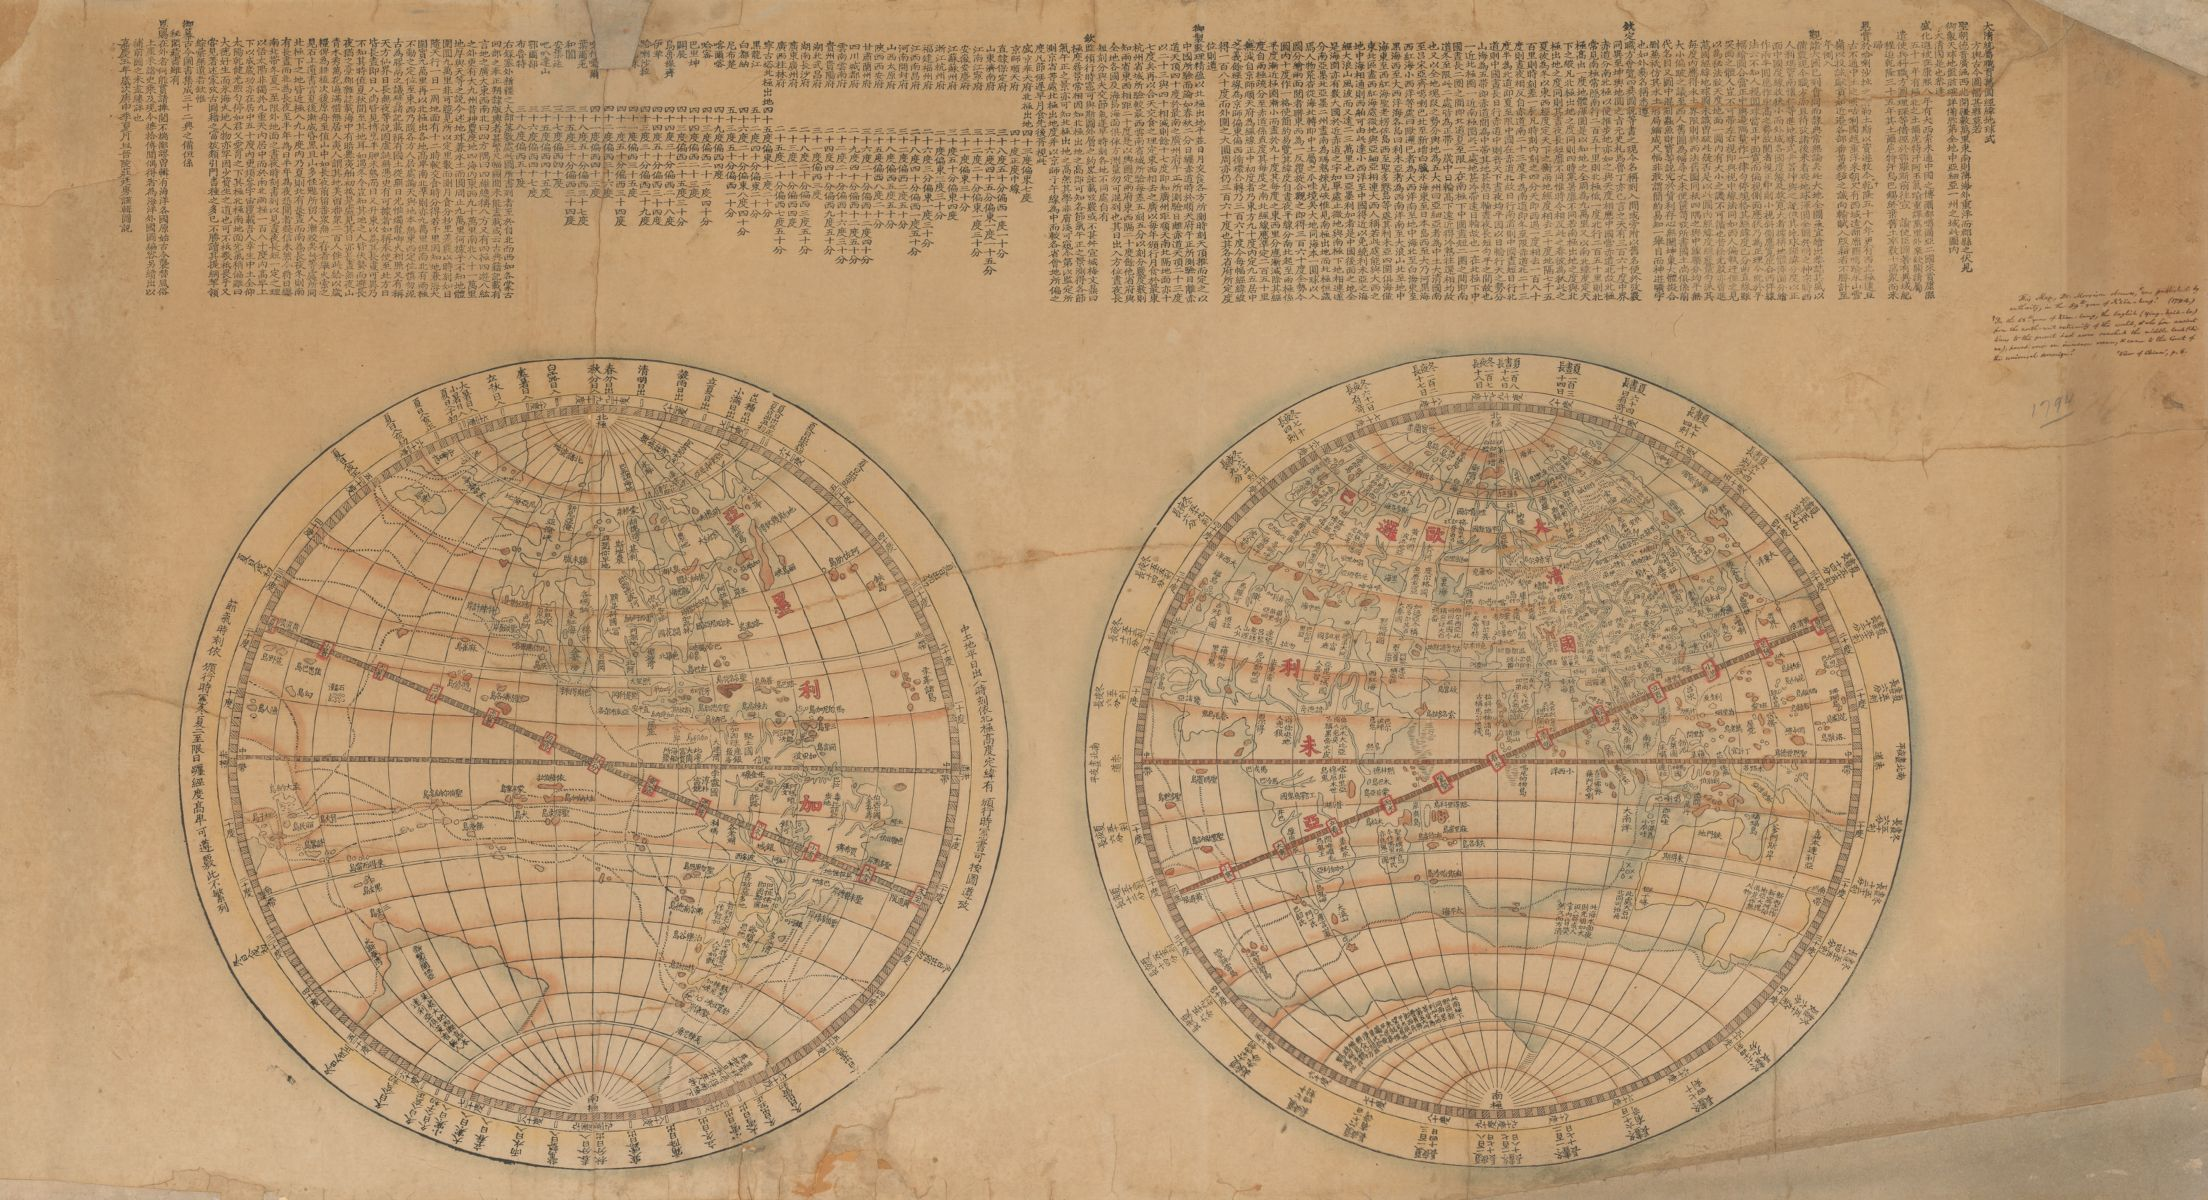 Zhuang Tingfu, 大清統職貢萬國經緯地球式方輿古今圖 [=Great Qing Dynasty world map of tribute bearing countries with spherical coordinates, past and present] (1800). China, Qing dynasty, sheet map, ink and color on paper, MacLean Collection 33486